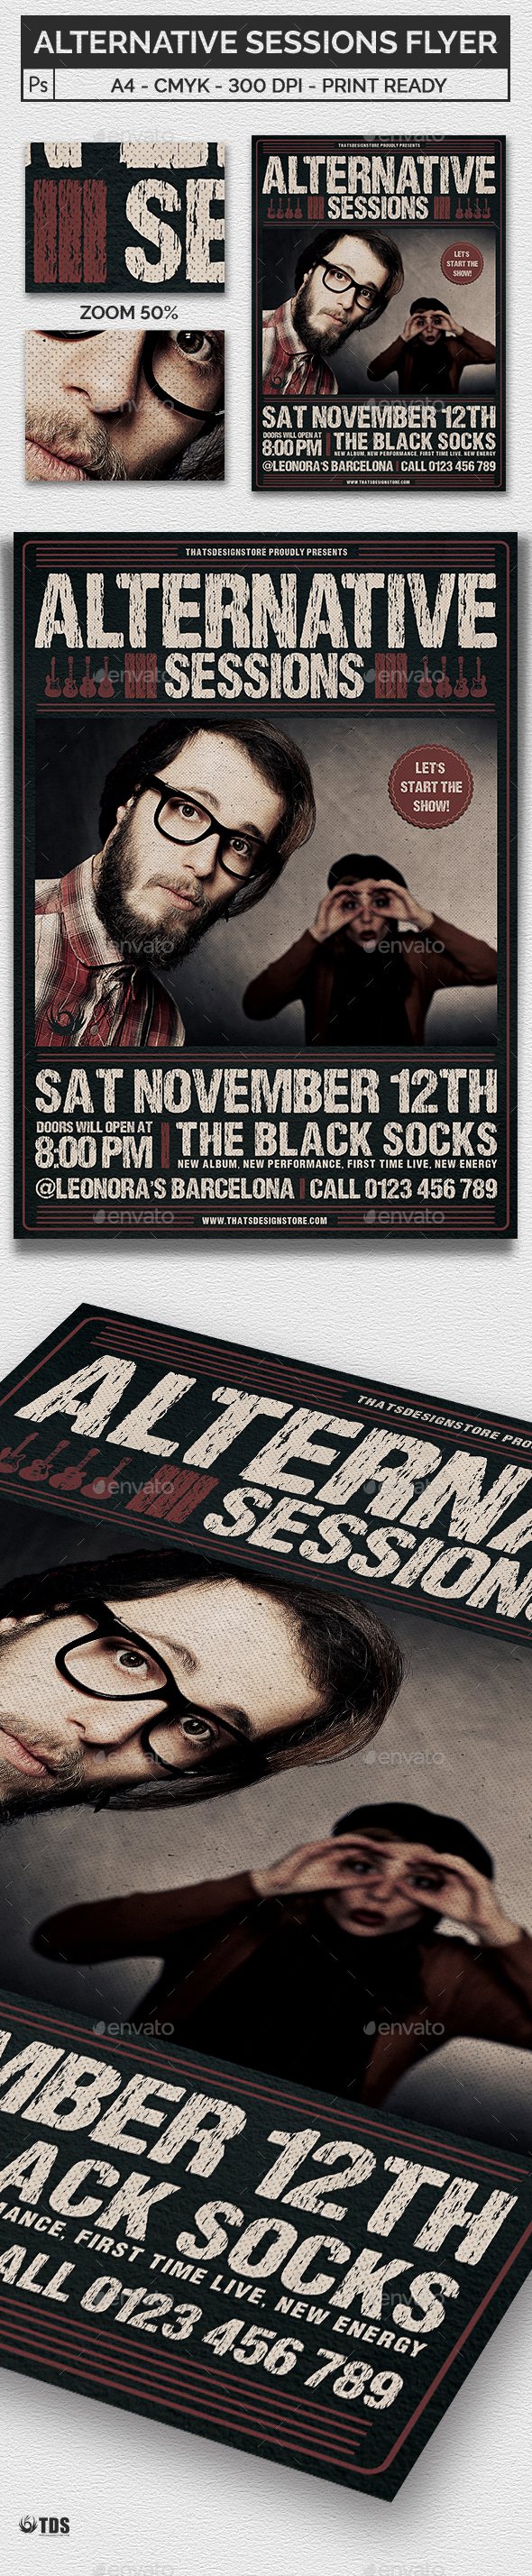 Alternative Sessions Flyer Template - Concerts Events